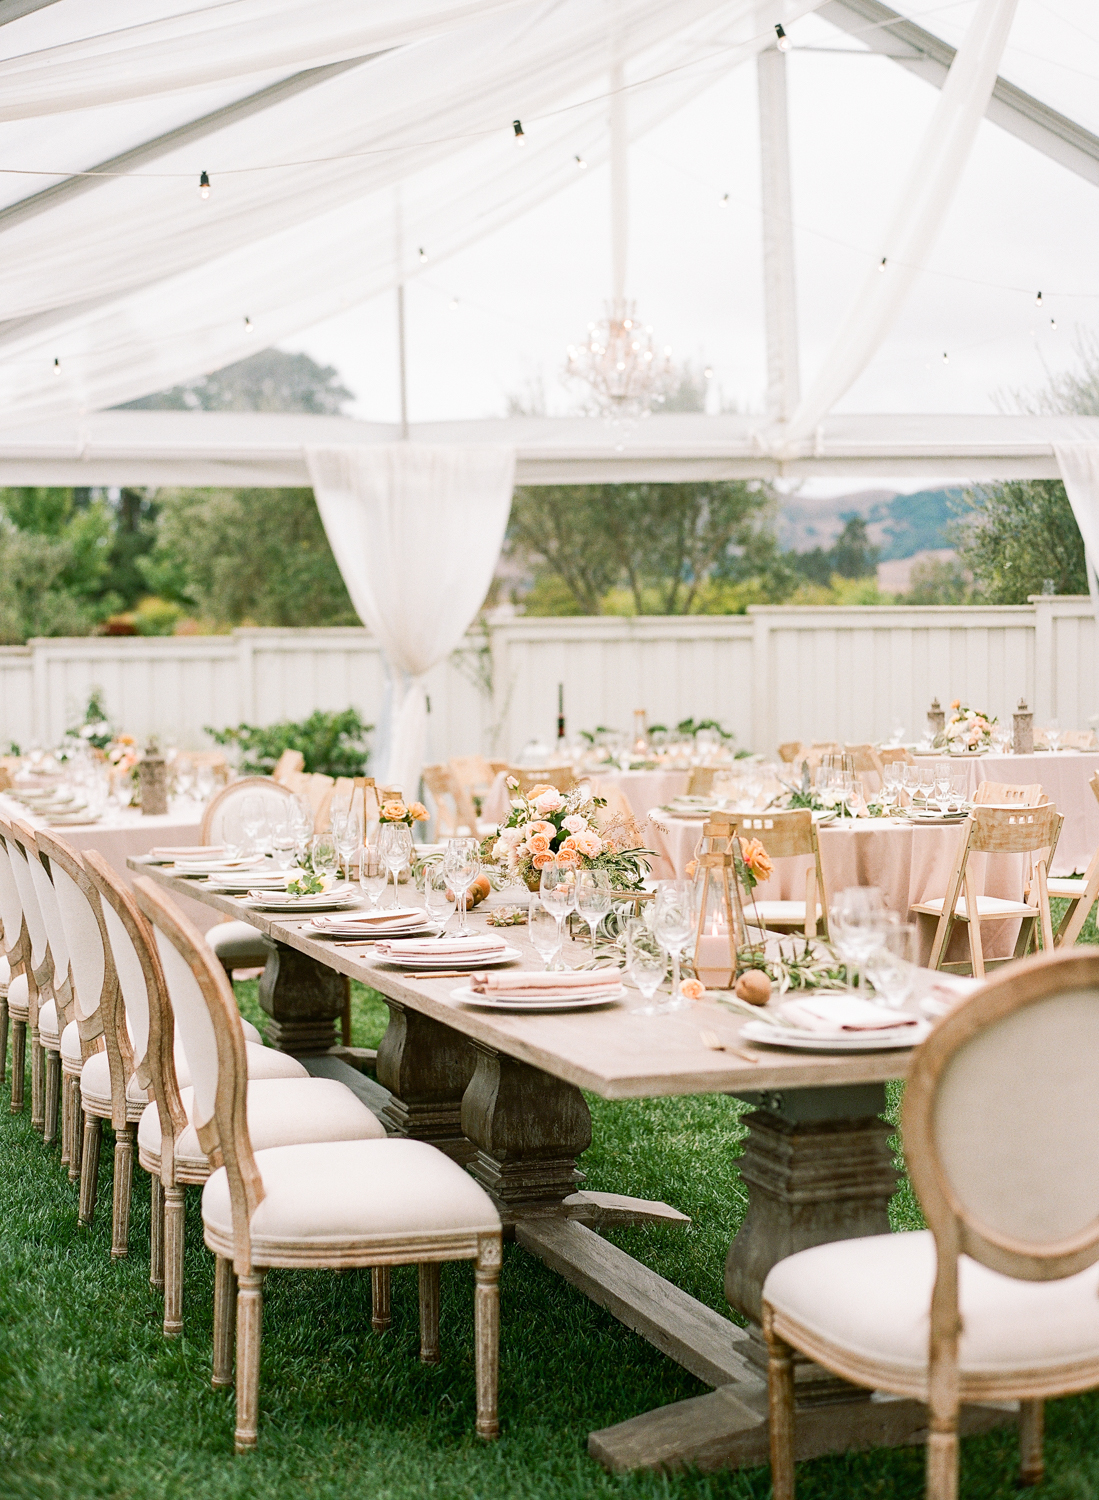 clear tent reception on lawn surrounded by grape vines